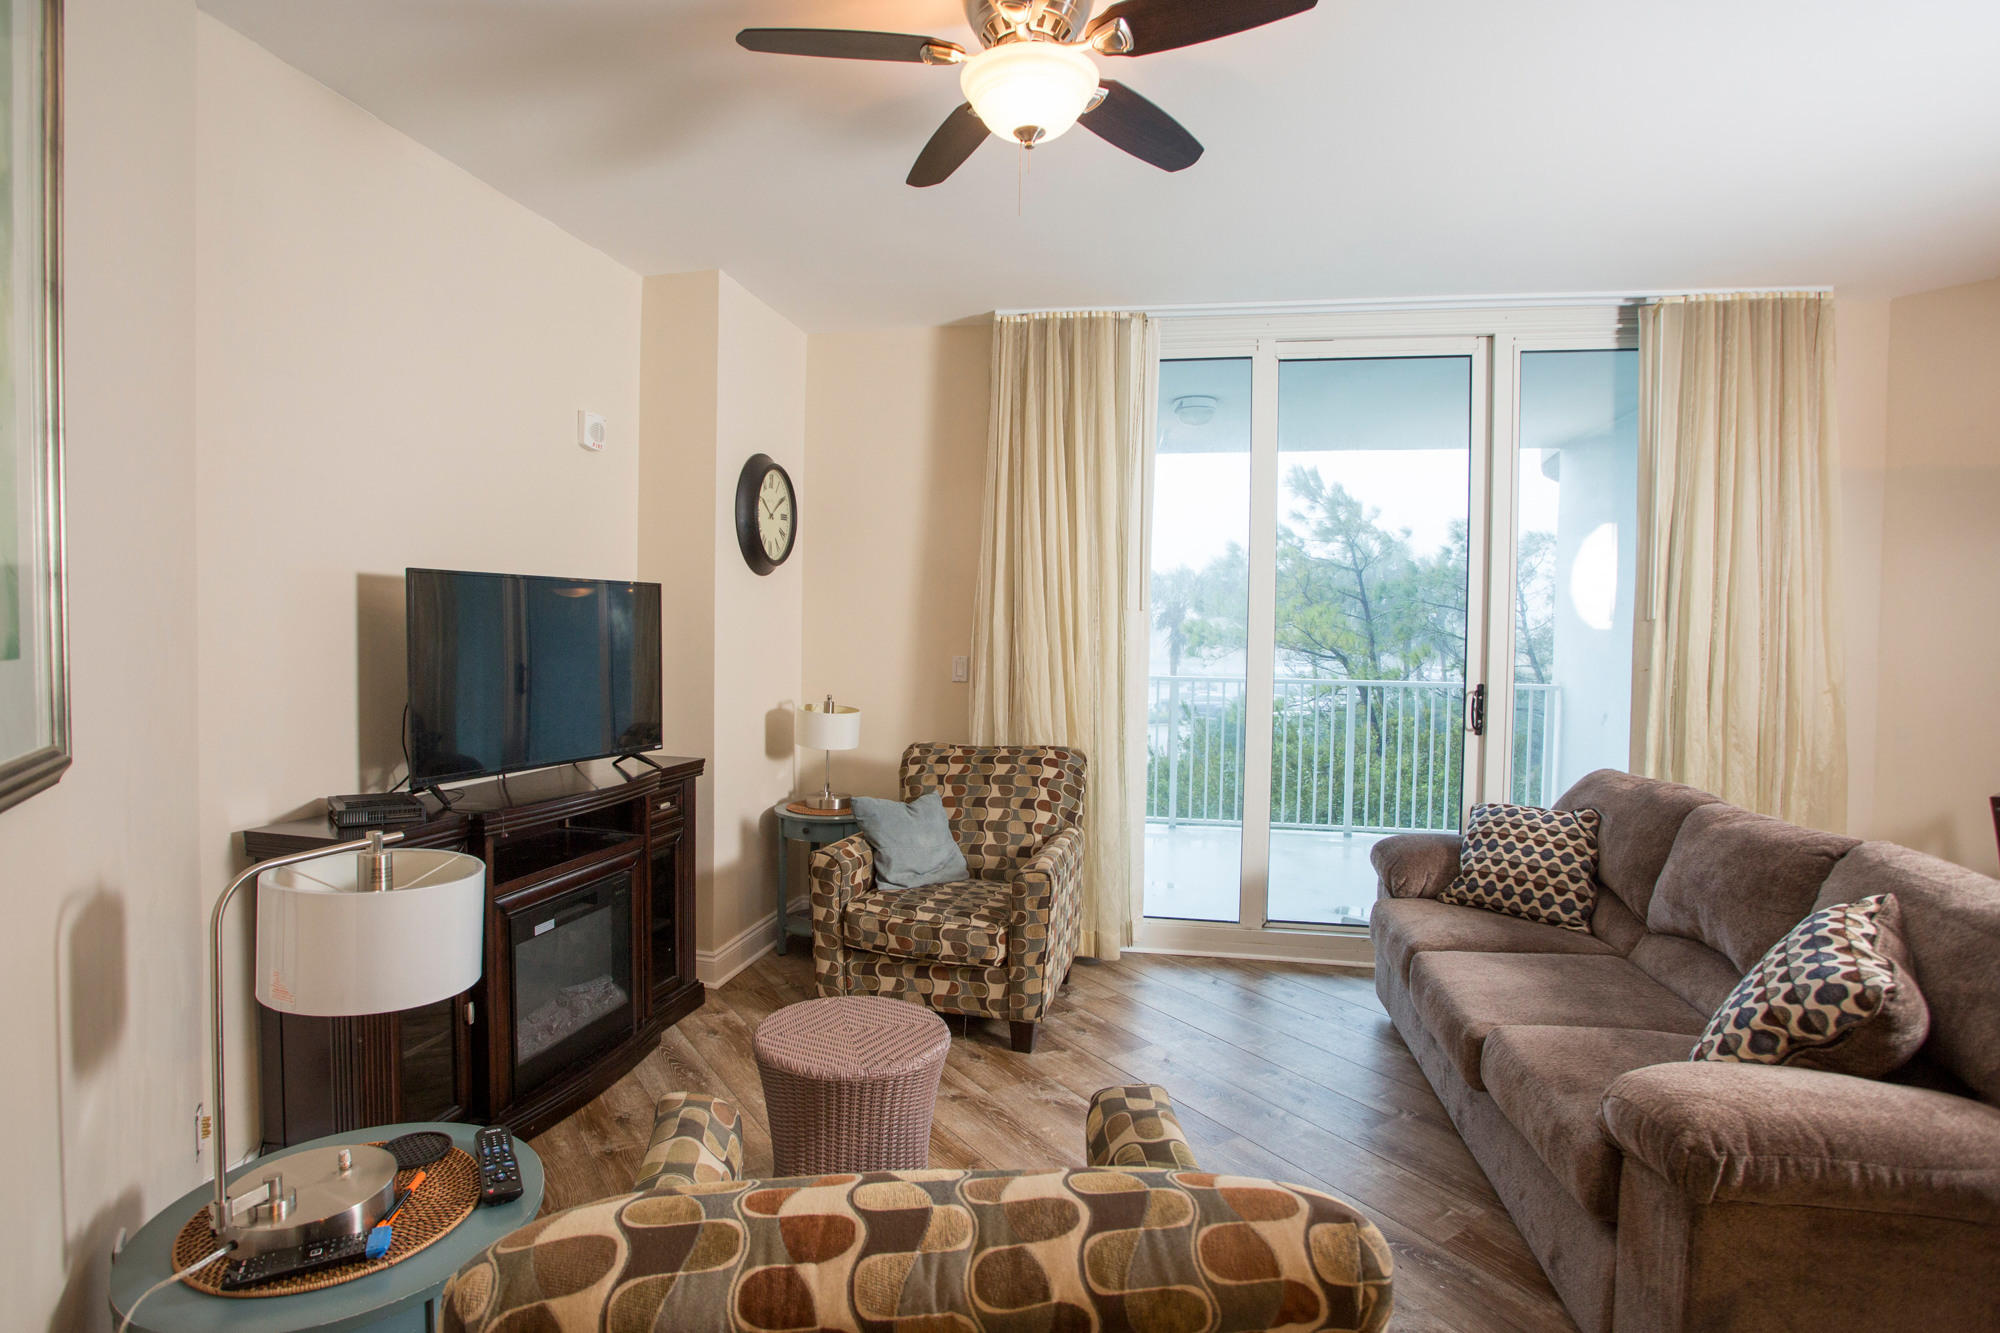 This is a must see unit, this plan features 2 full bedrooms, 2 full baths, 3 Balcony's, Tile in entry and kitchen, new dish water, flooring in living room and hall looks like hardwood floor, updated unit with loads of extras.. The HOA includes all utilities including electricity.. Large Lagoon pool, and more..